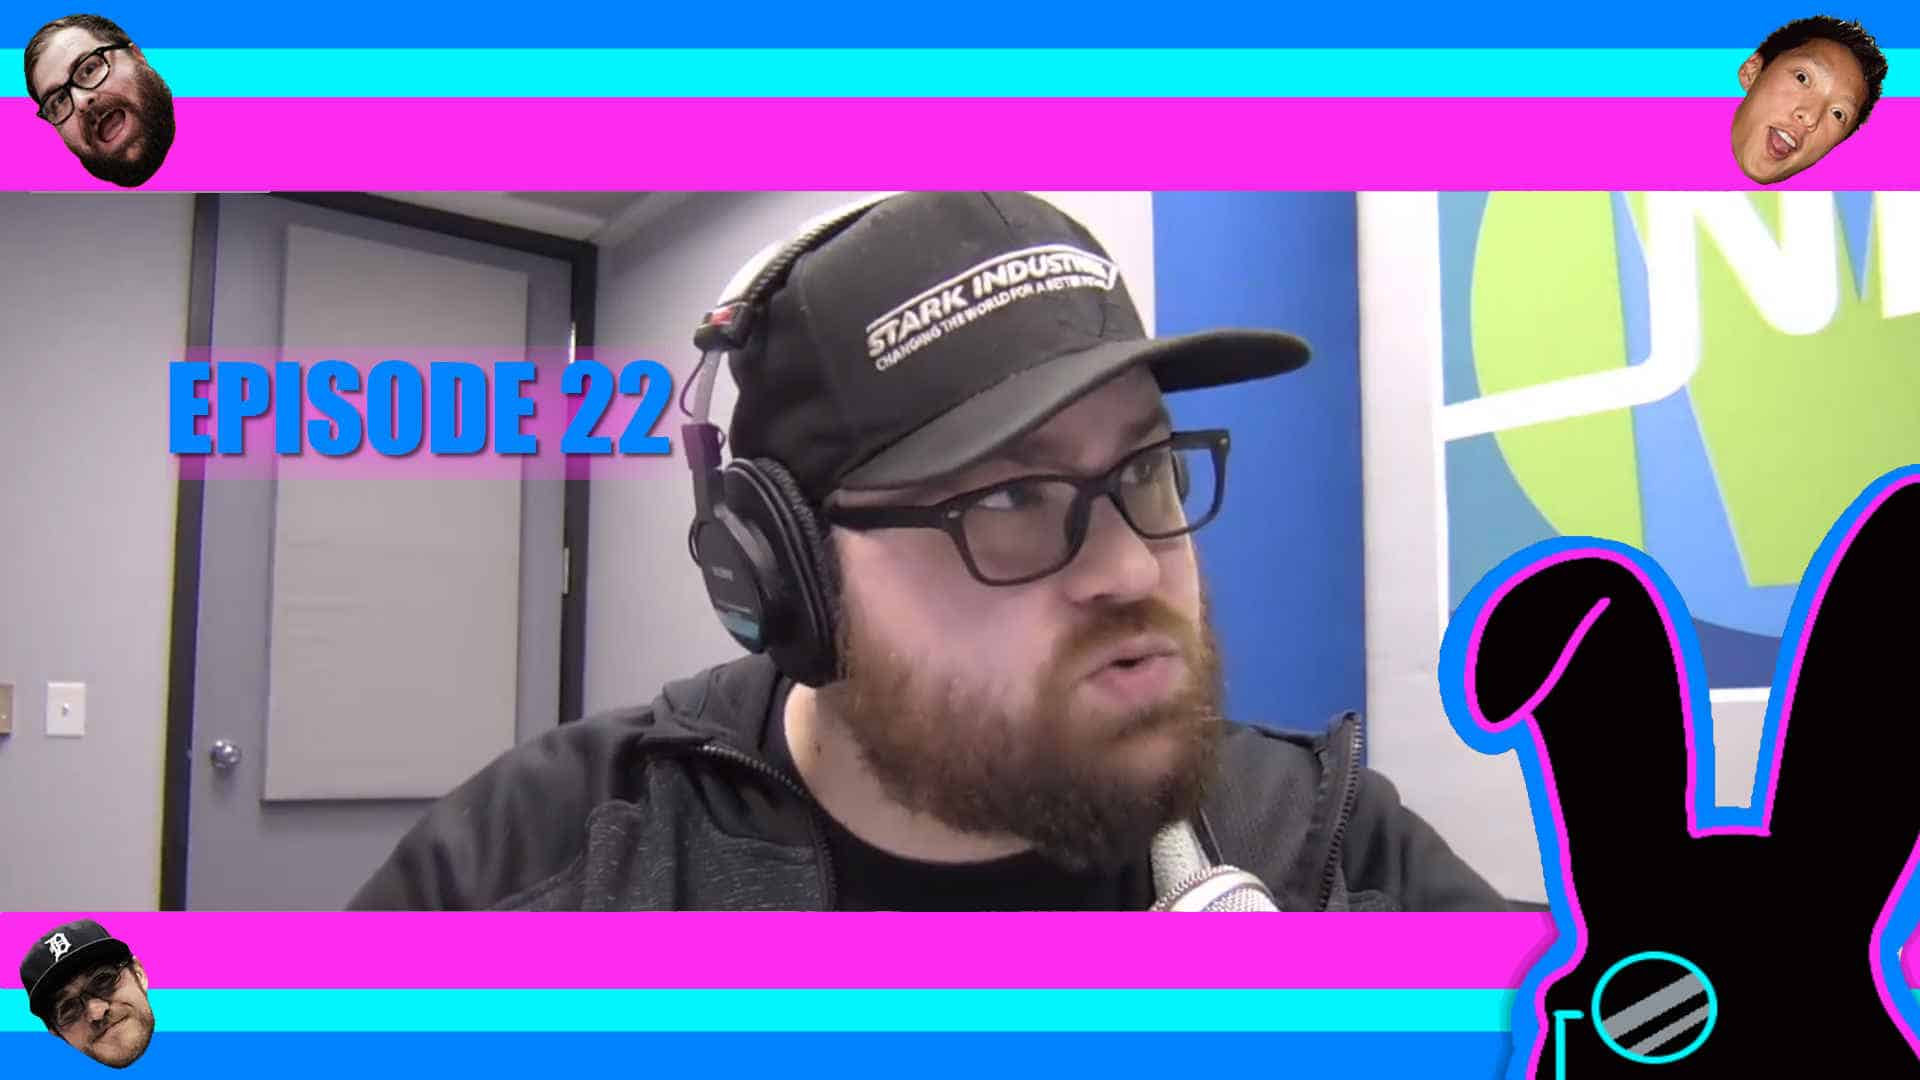 Geektainment Weekly - Episode 22